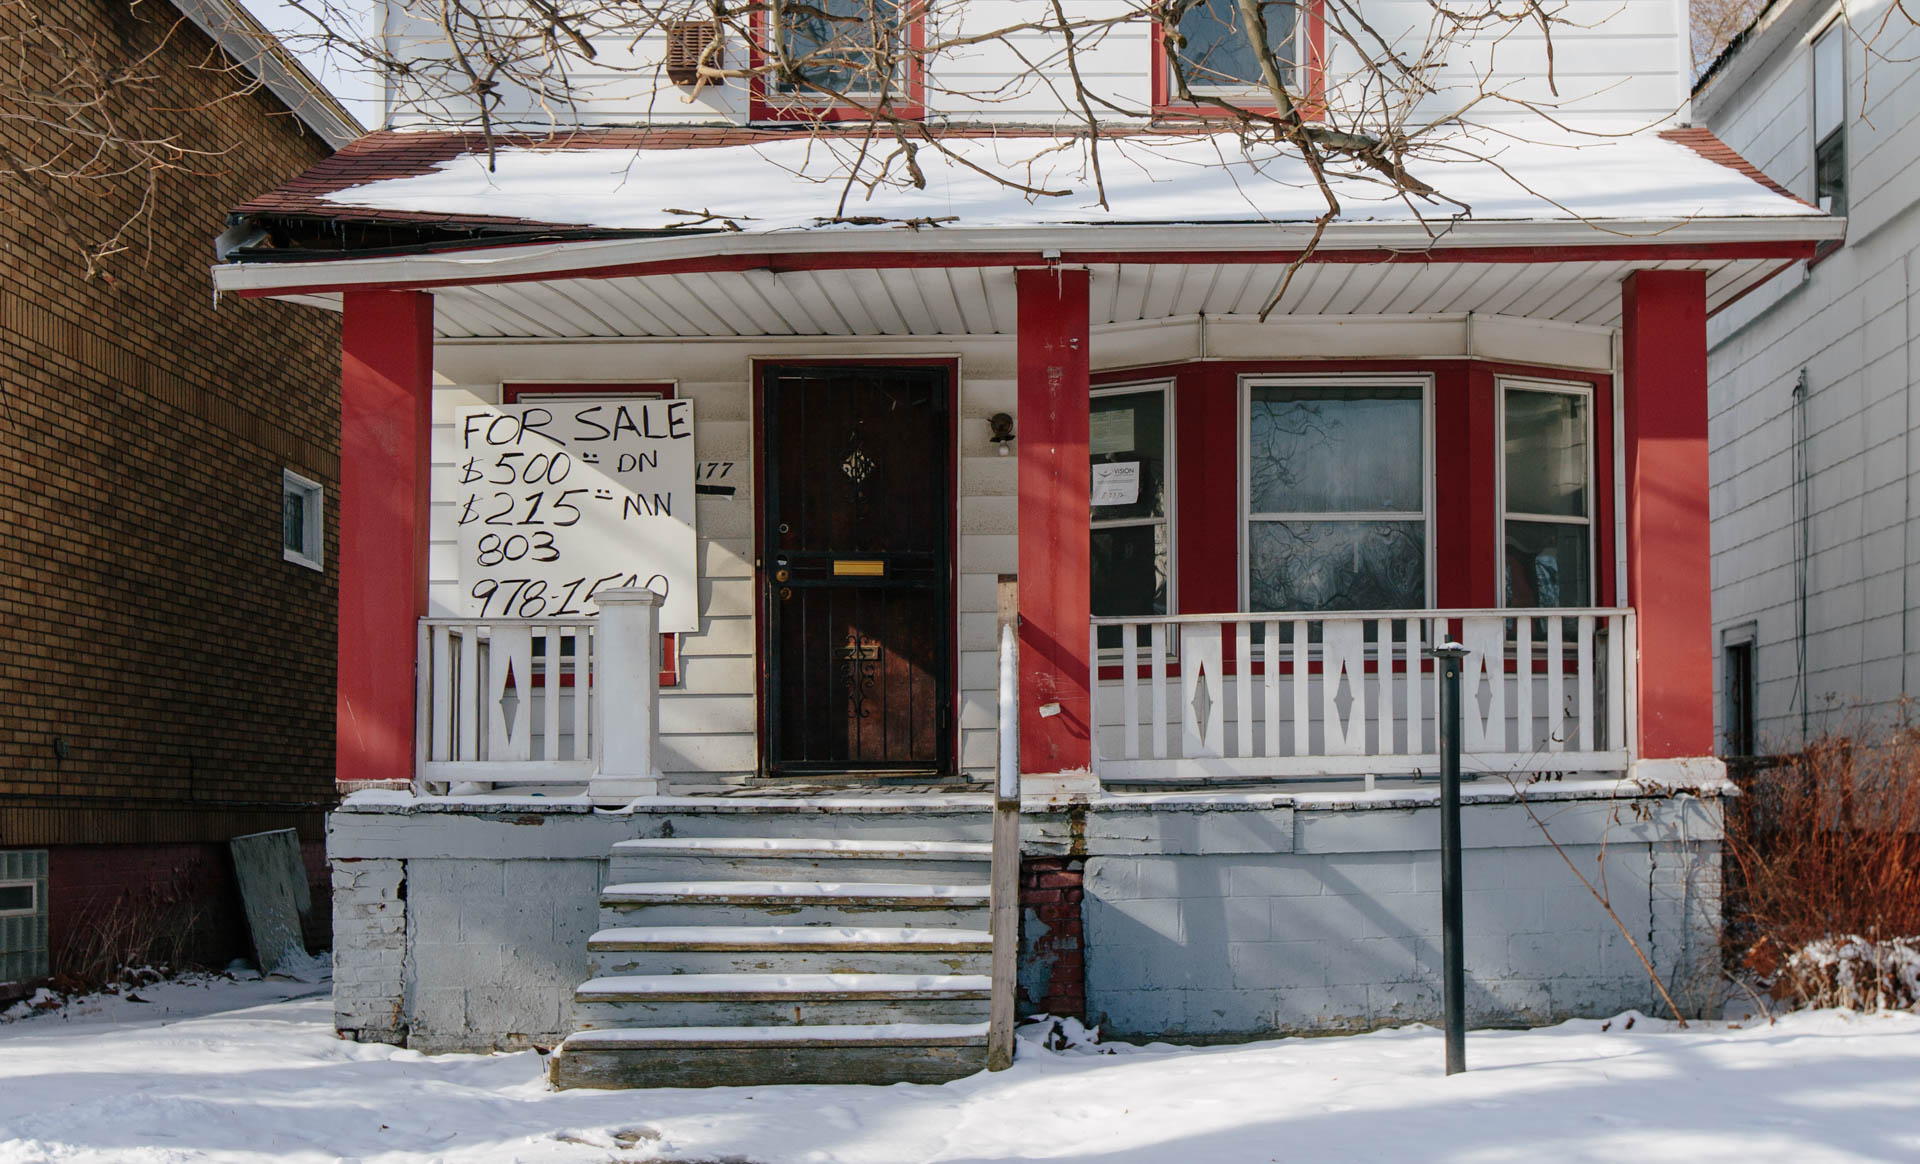 for-sale-500-down-detroit-home